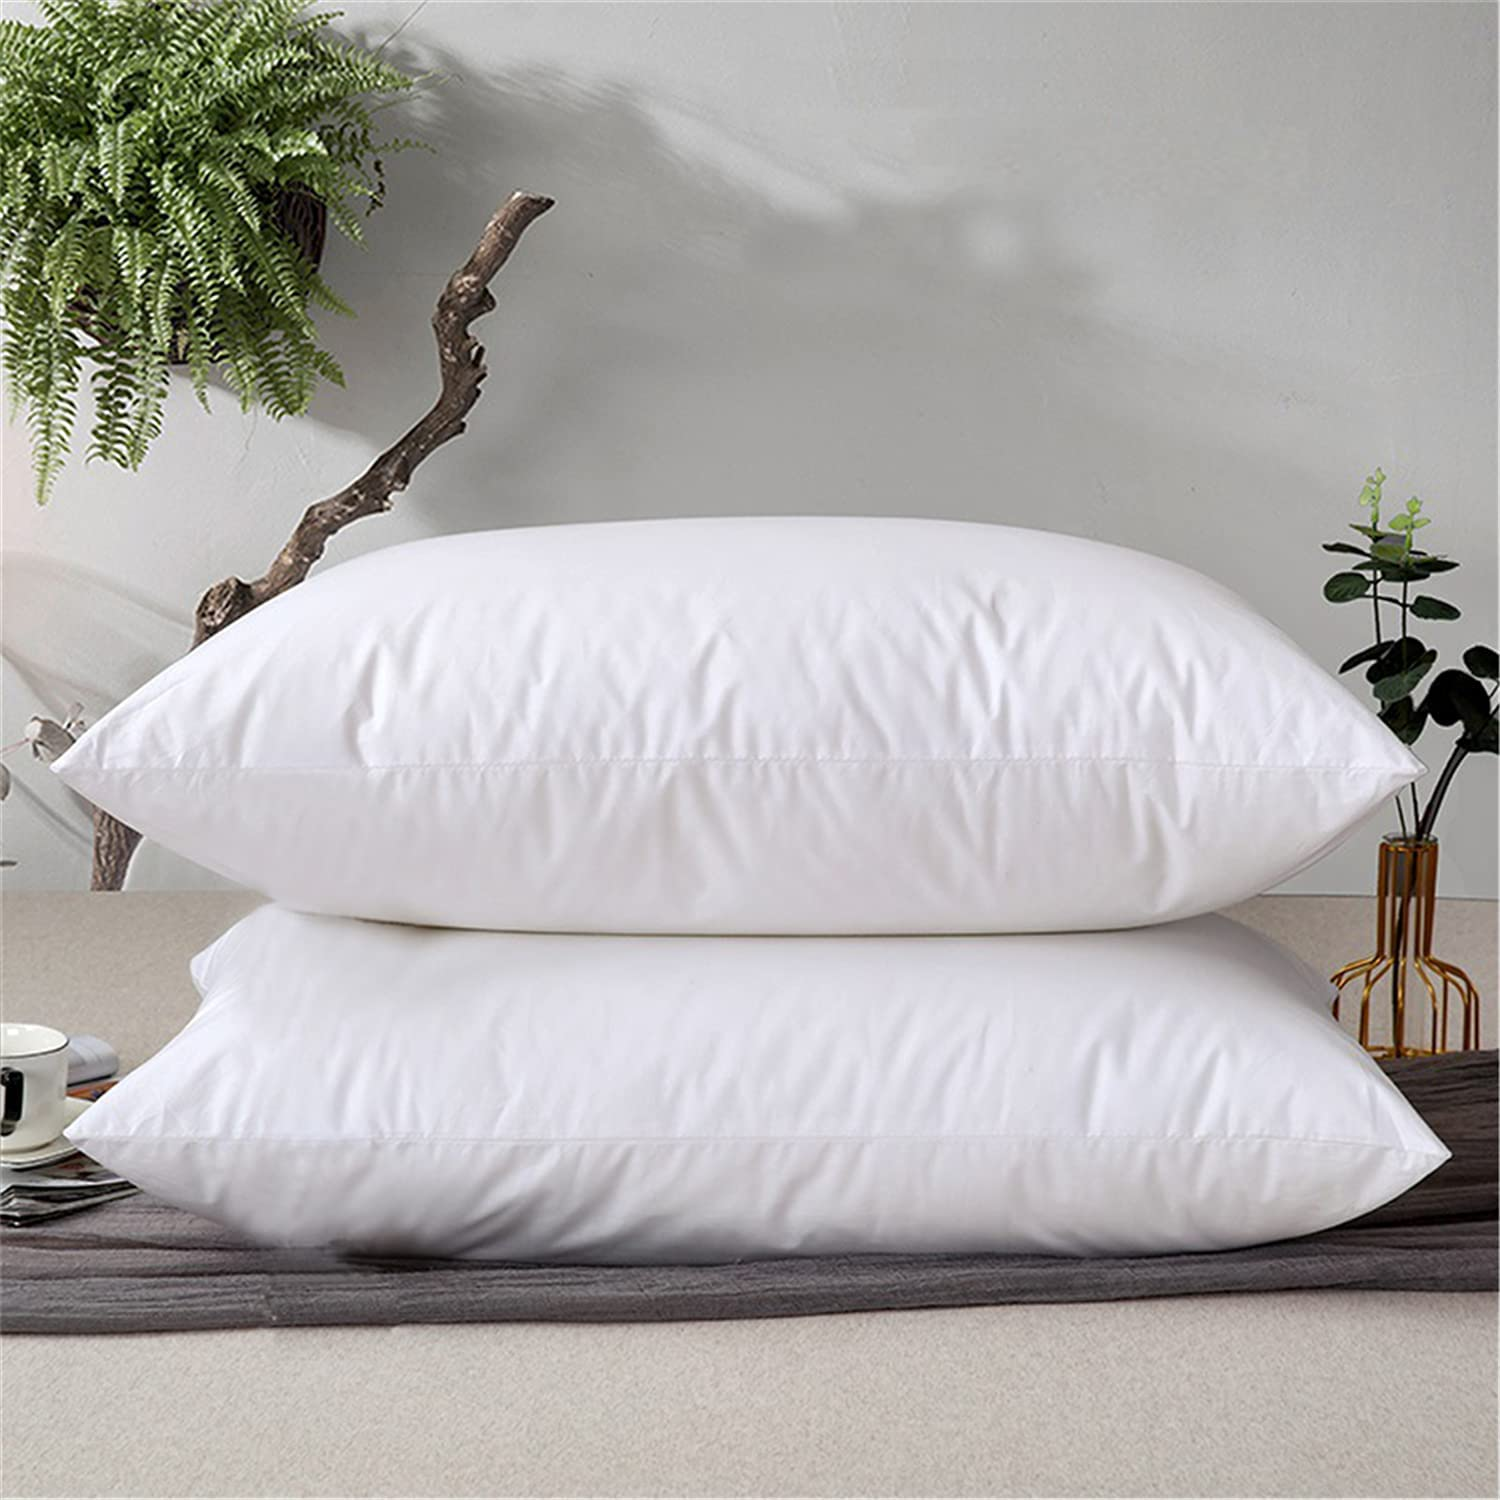 Bed Pillows Ranking TOP7 1 National products Pack Hotel Collection Inserts Soft for Slee Luxury